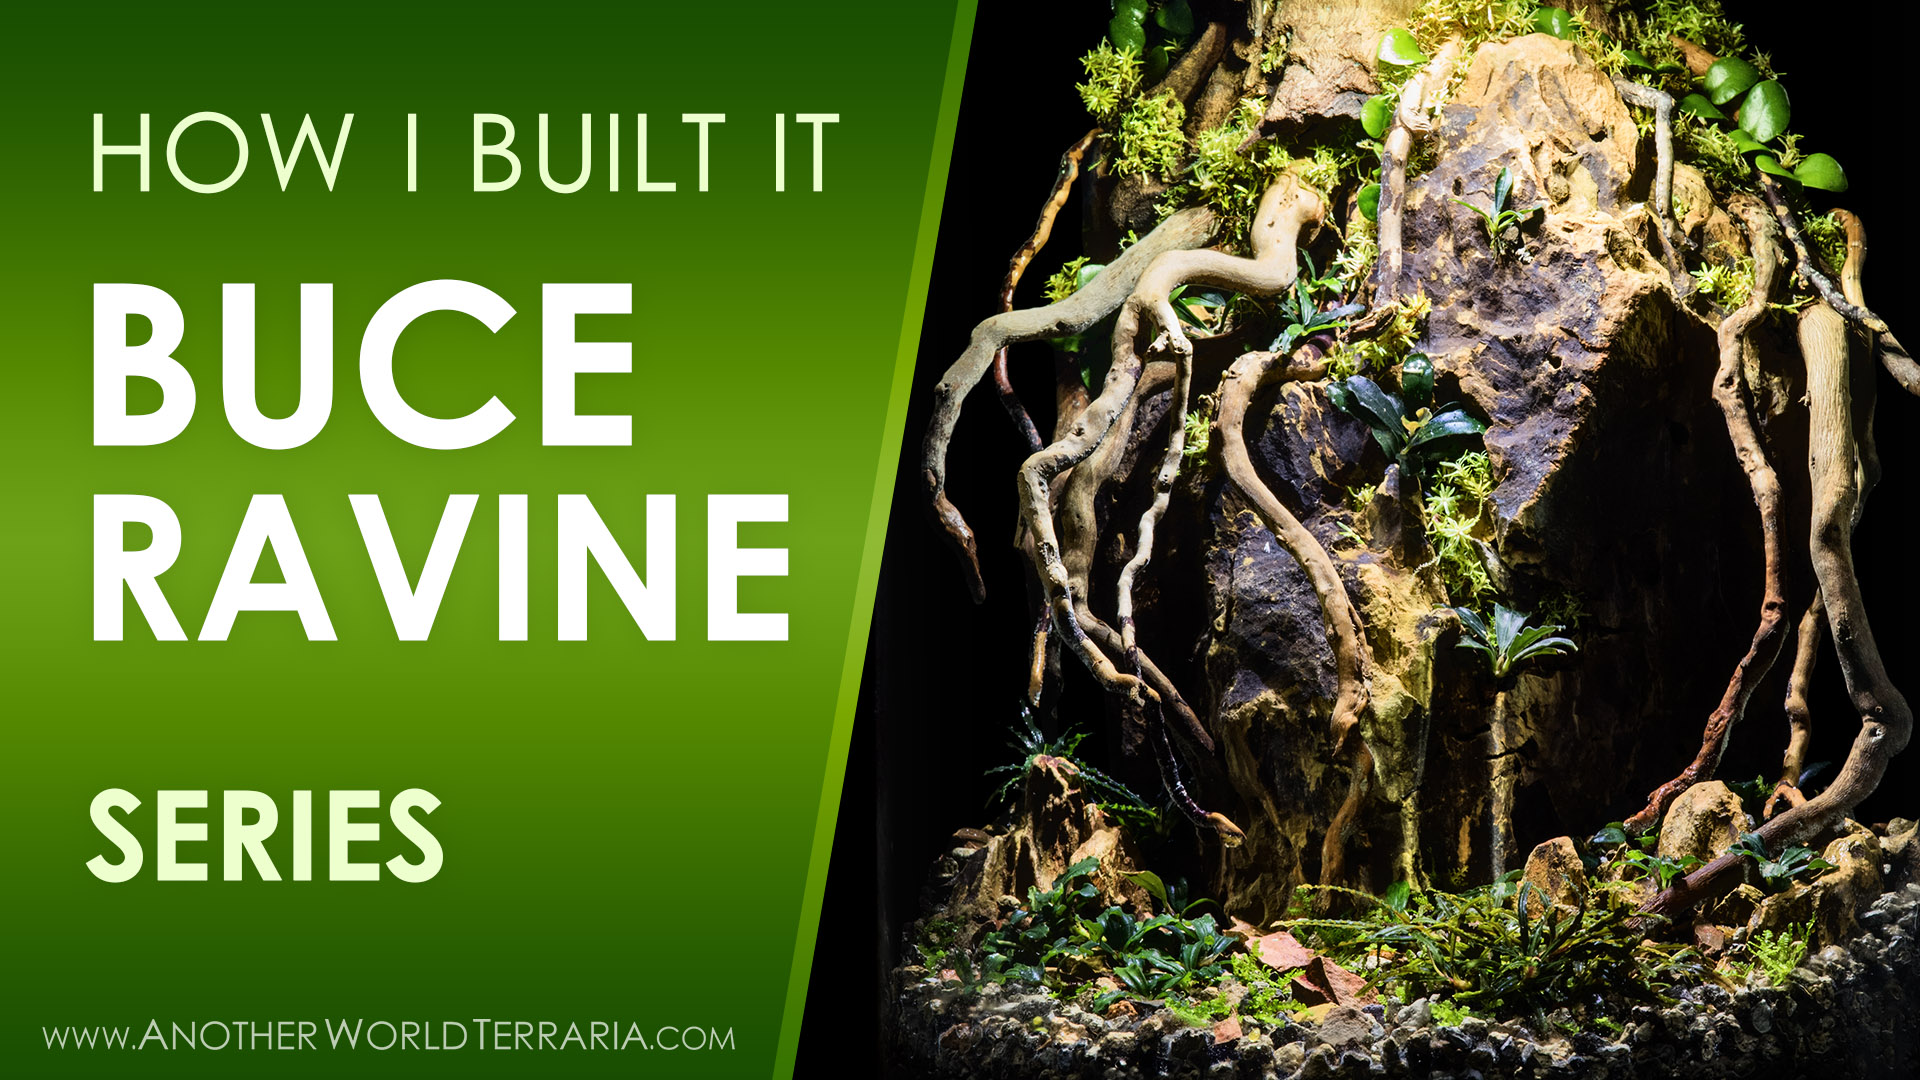 How I Built the Buce Ravine Terrarium Video Series